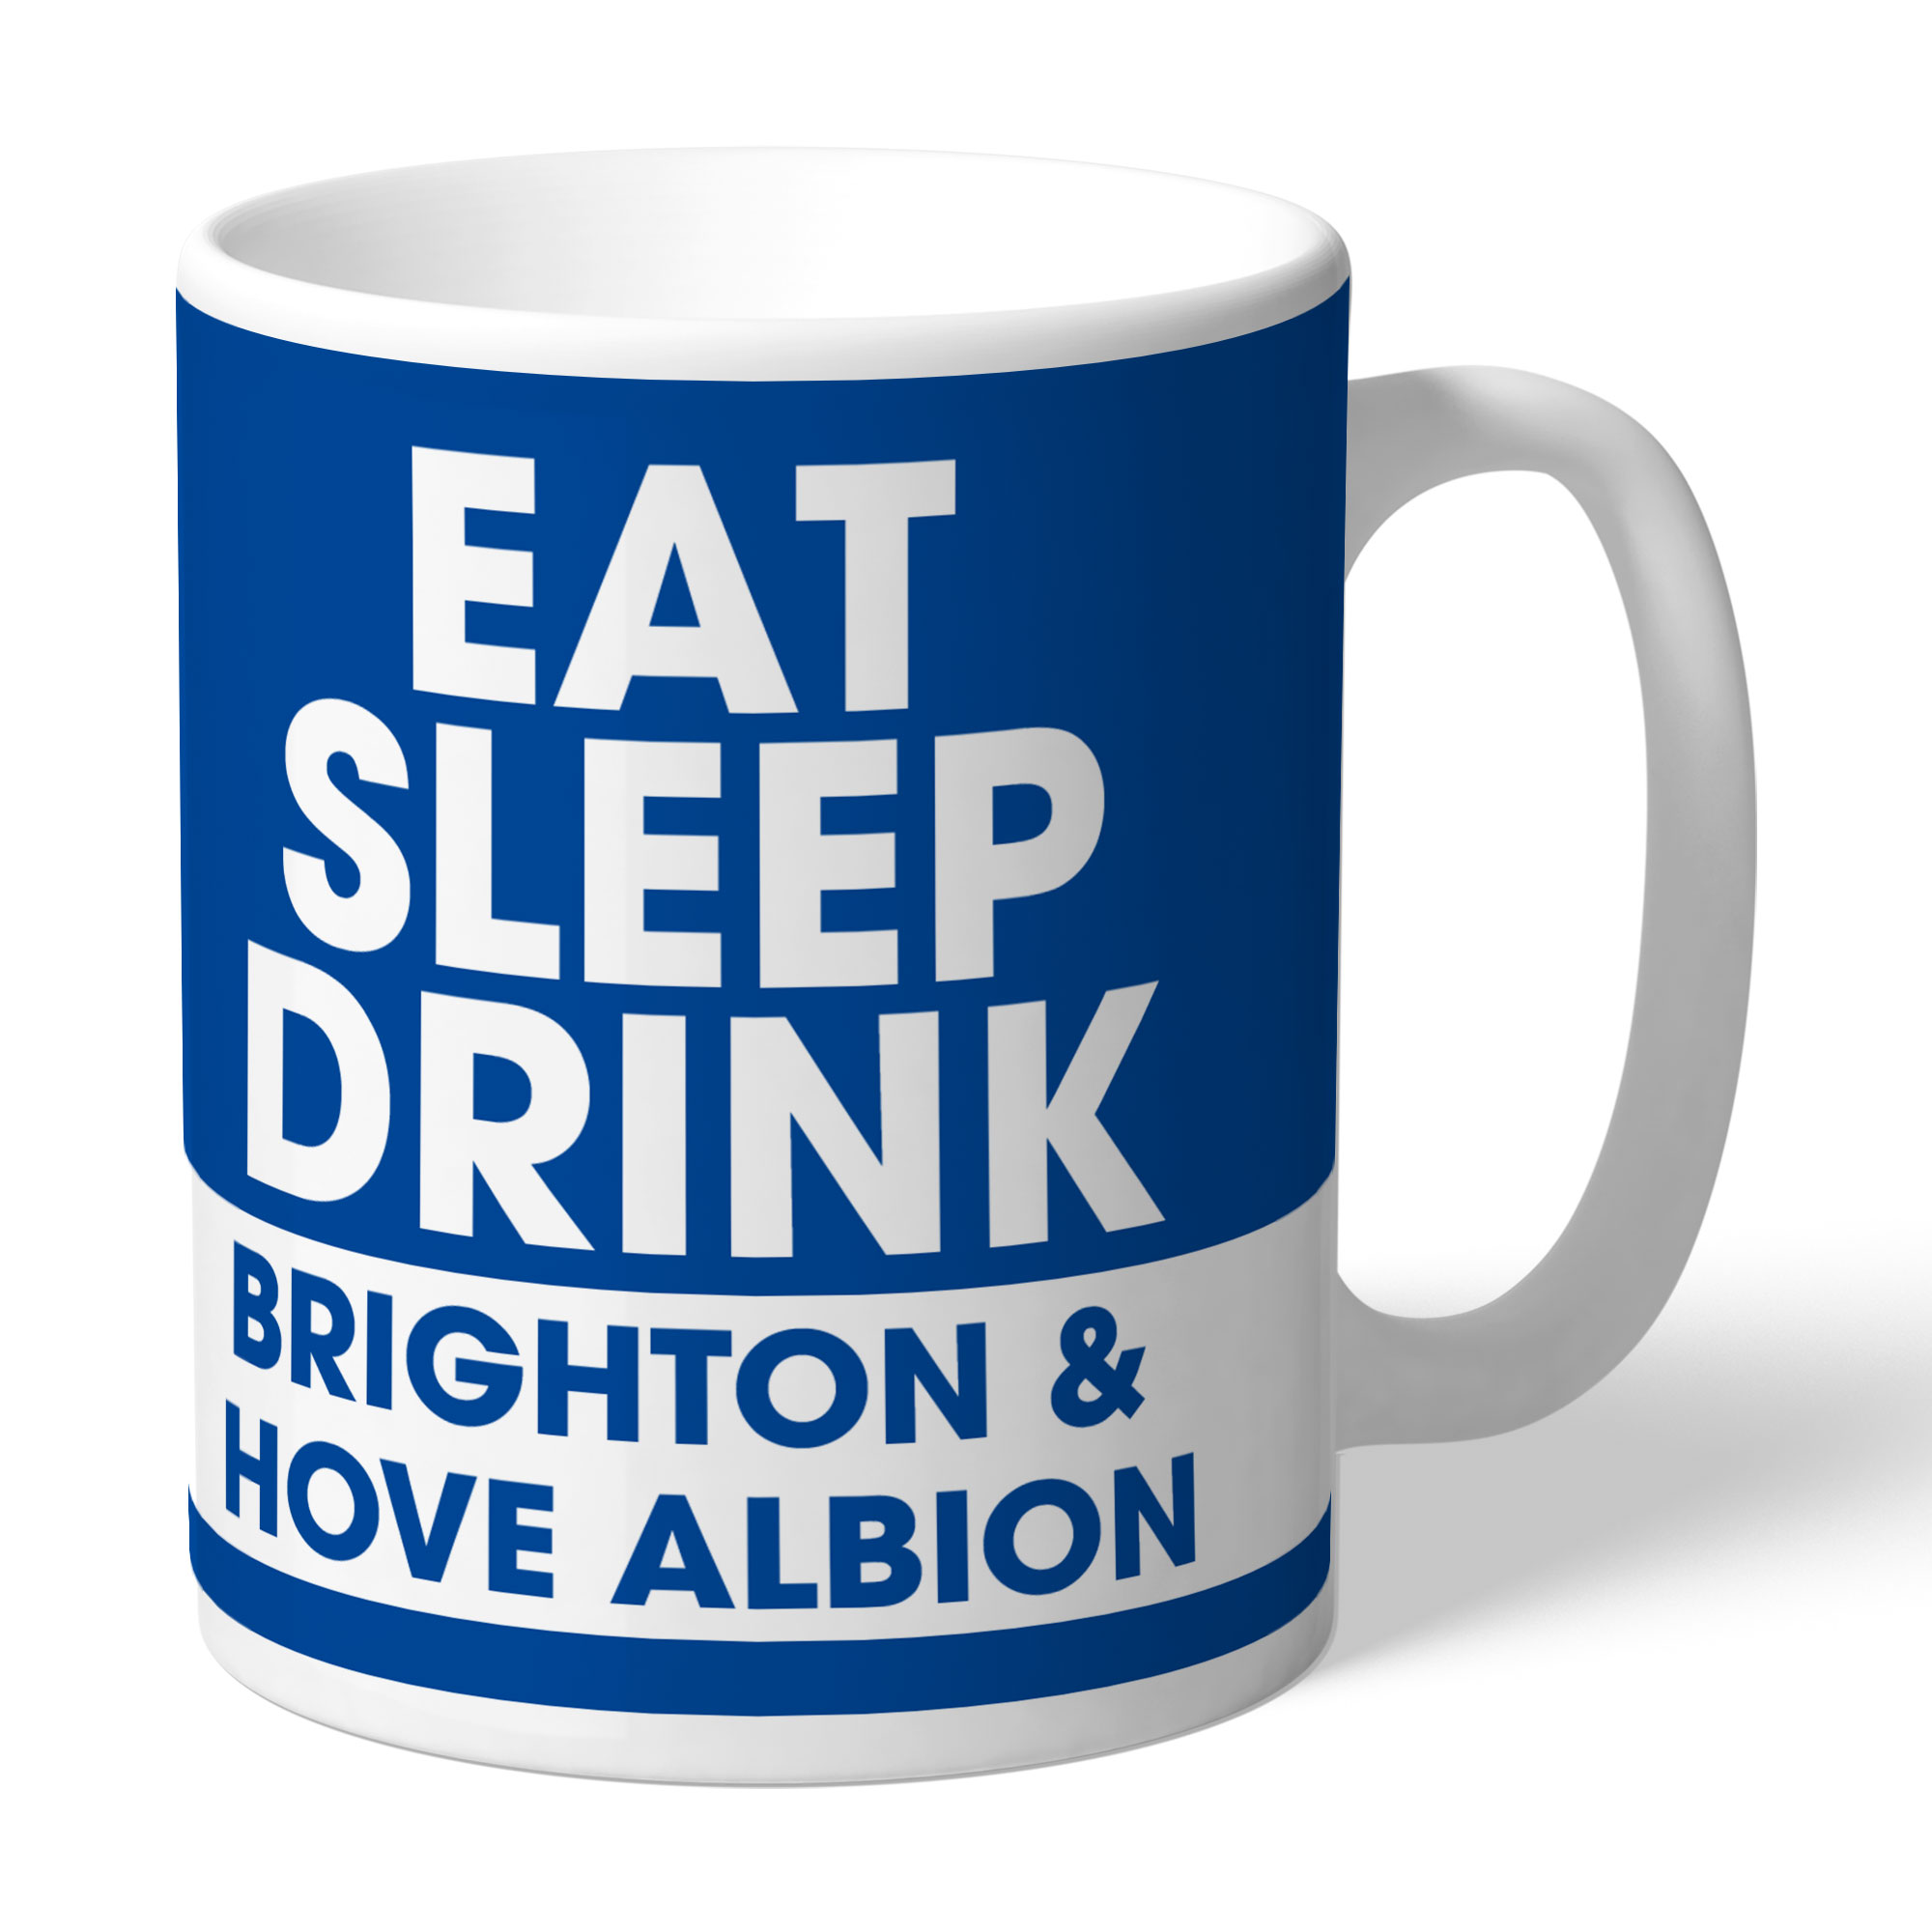 Brighton & Hove Albion FC Eat Sleep Drink Mug